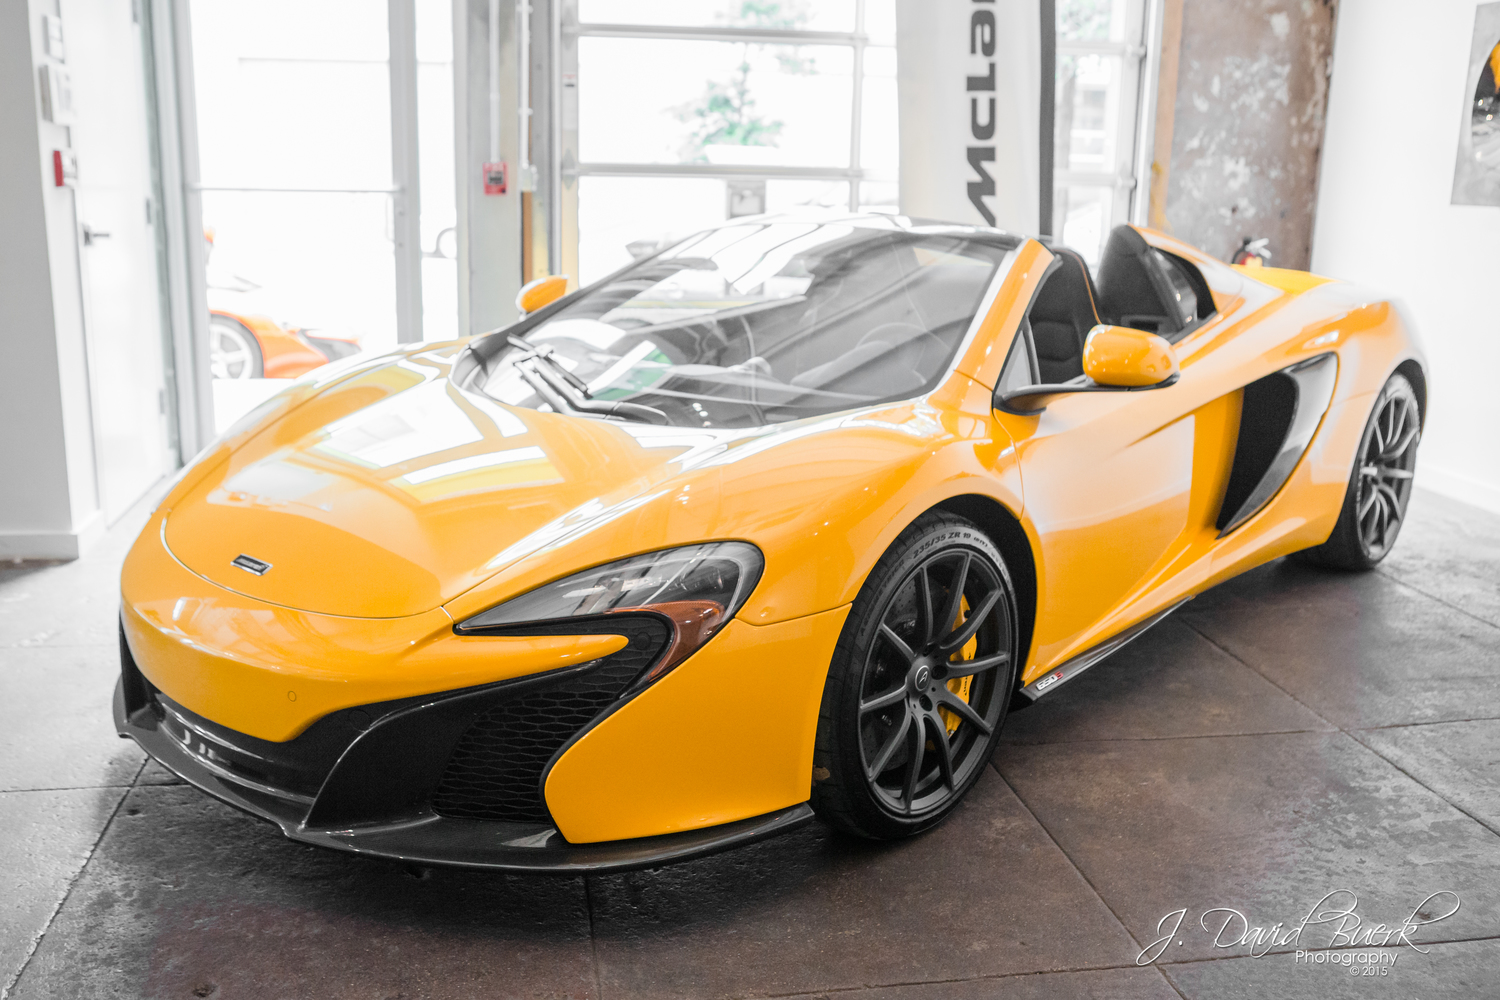 mclaren 570s — j. david buerk - photography